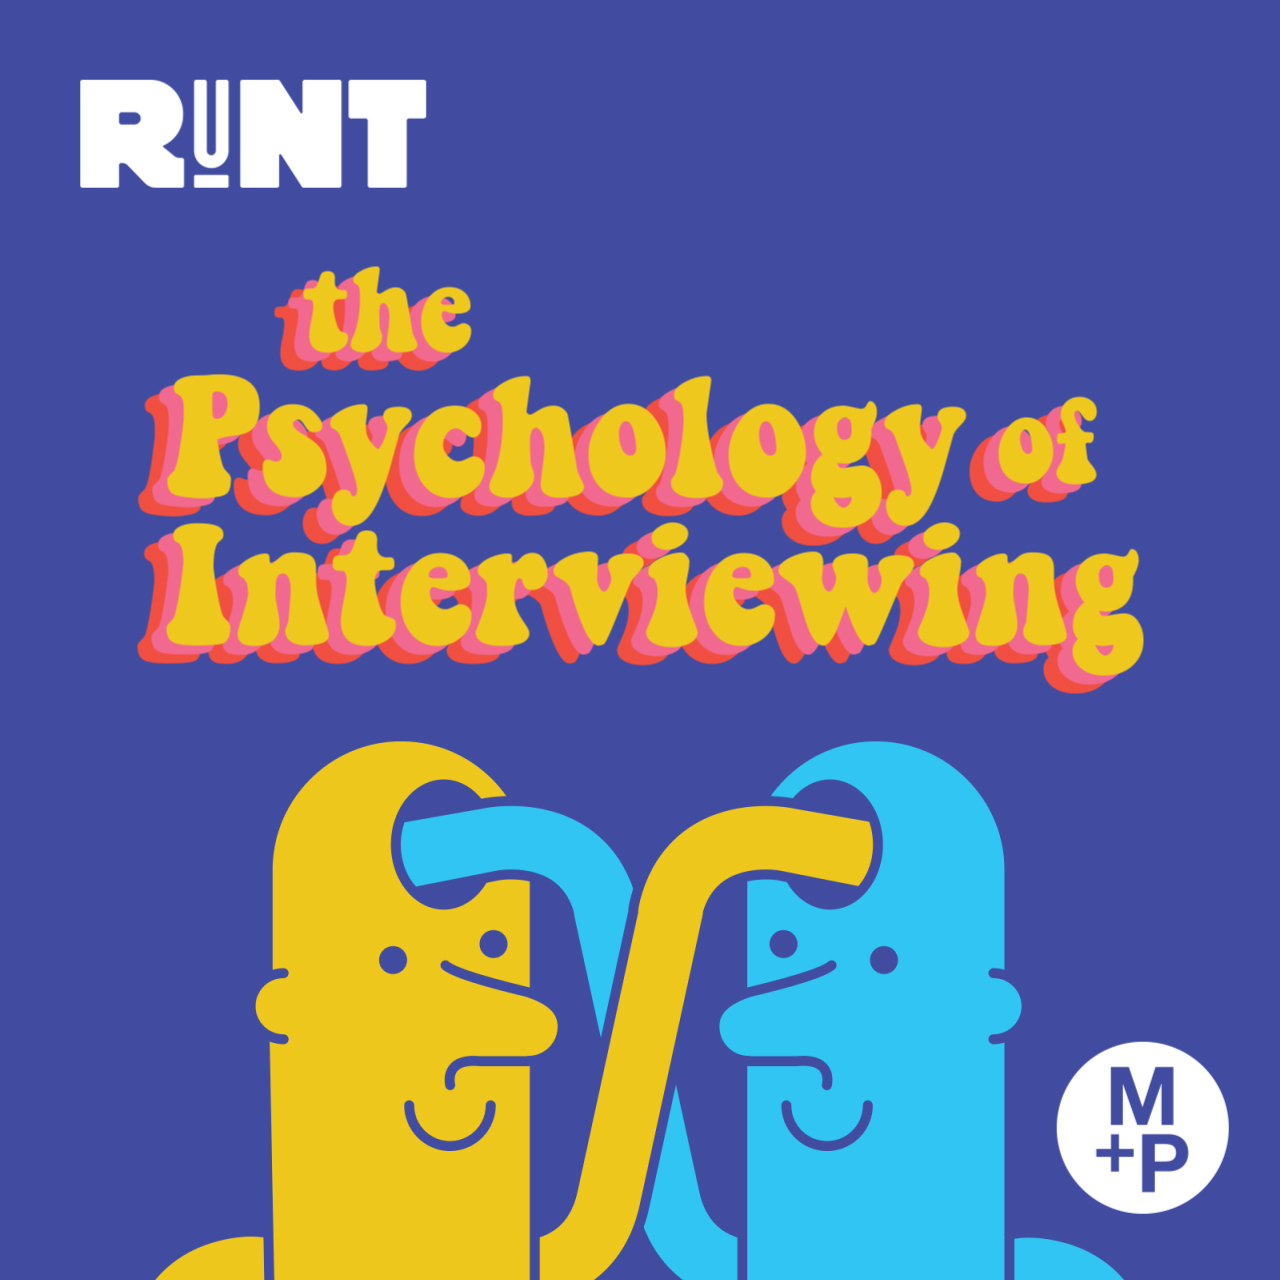 RuNT: The Psychology of Interviewing